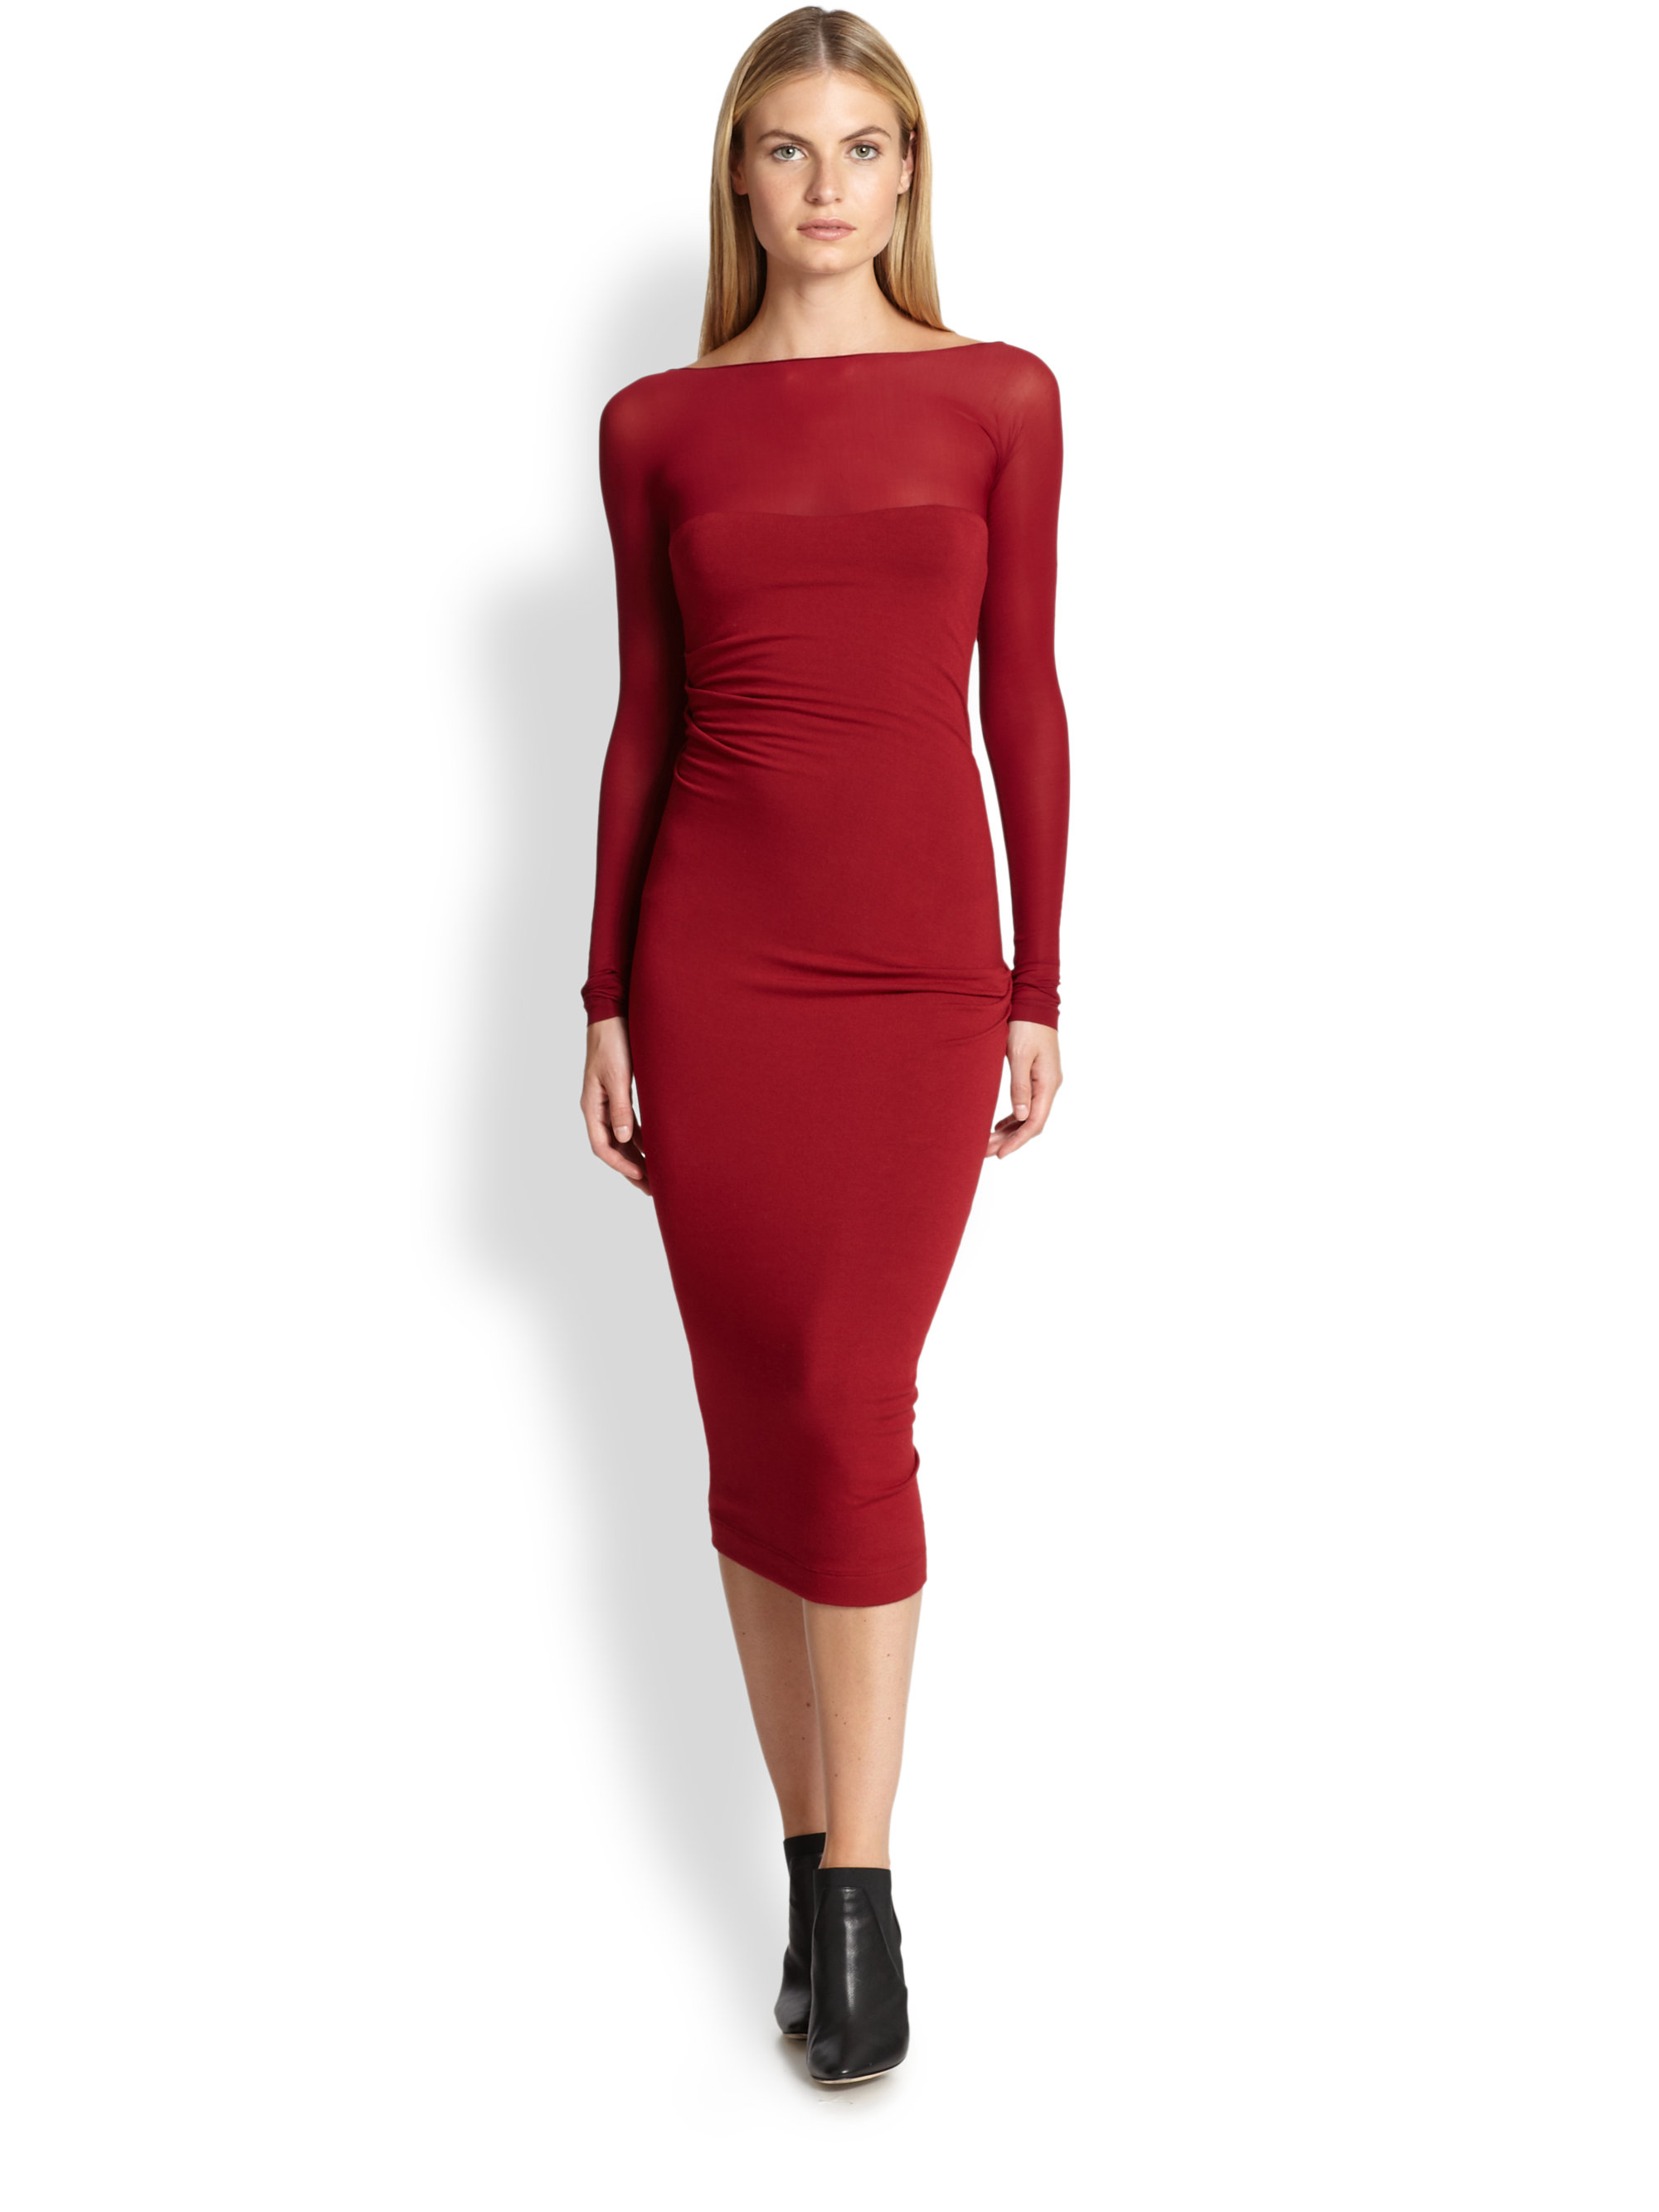 Lyst - Donna karan Ruched Jersey Bodycon Dress in Red